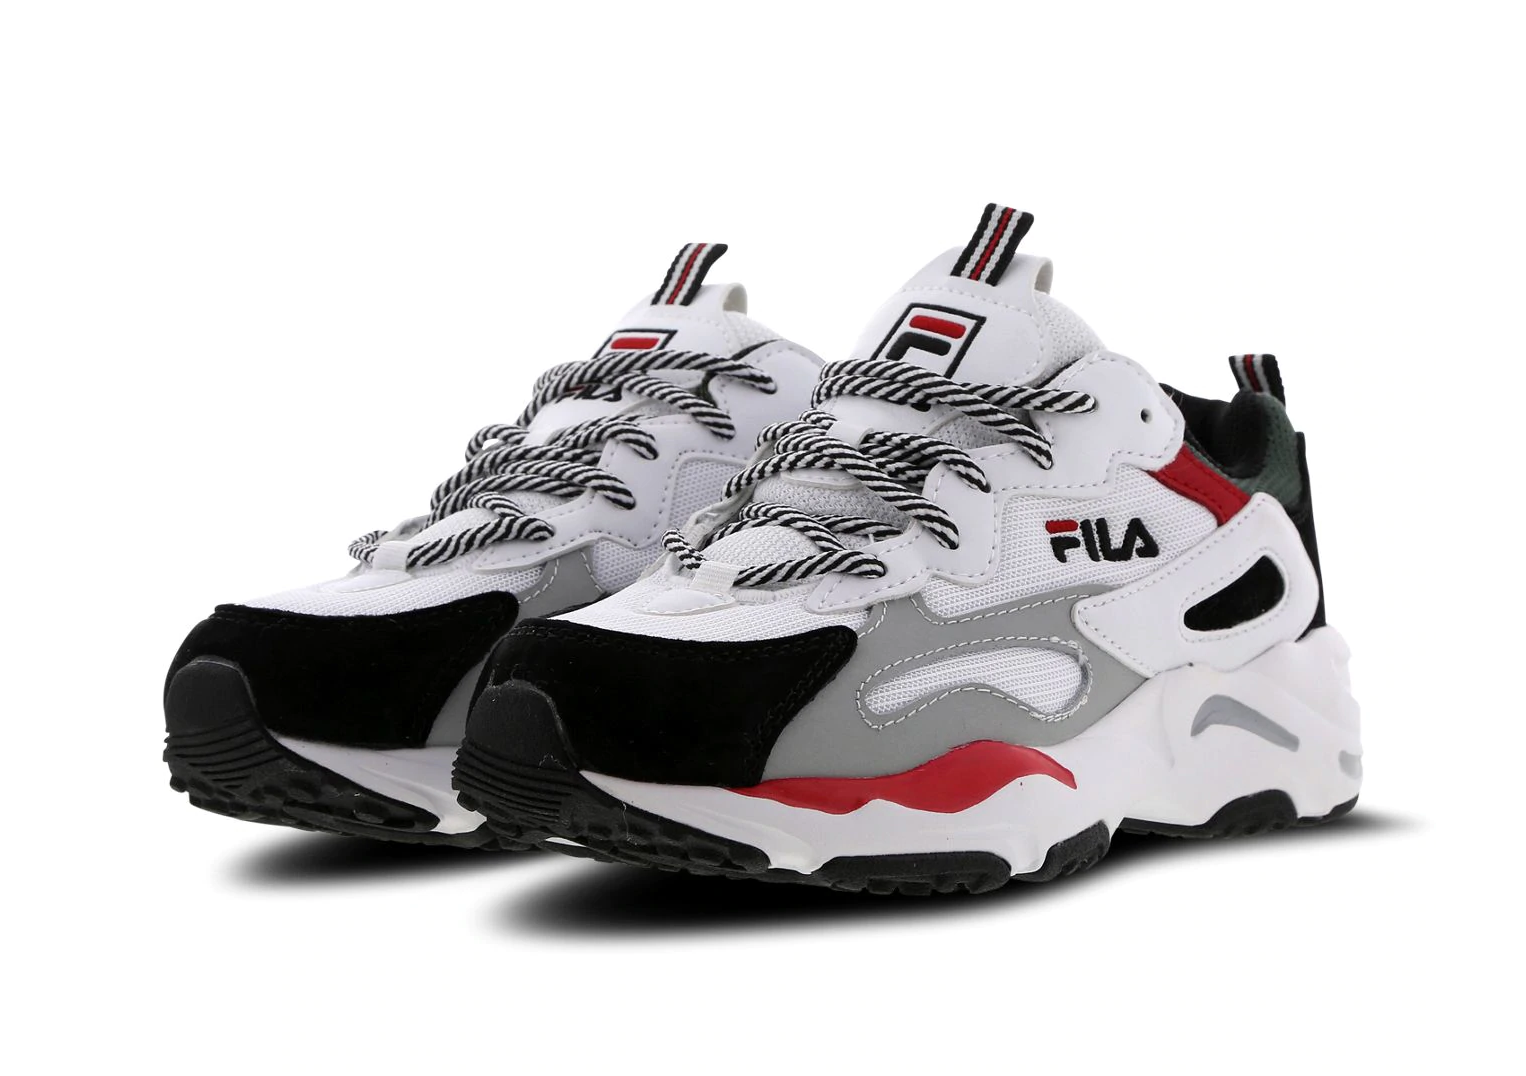 Fila Ray Tracer White Black